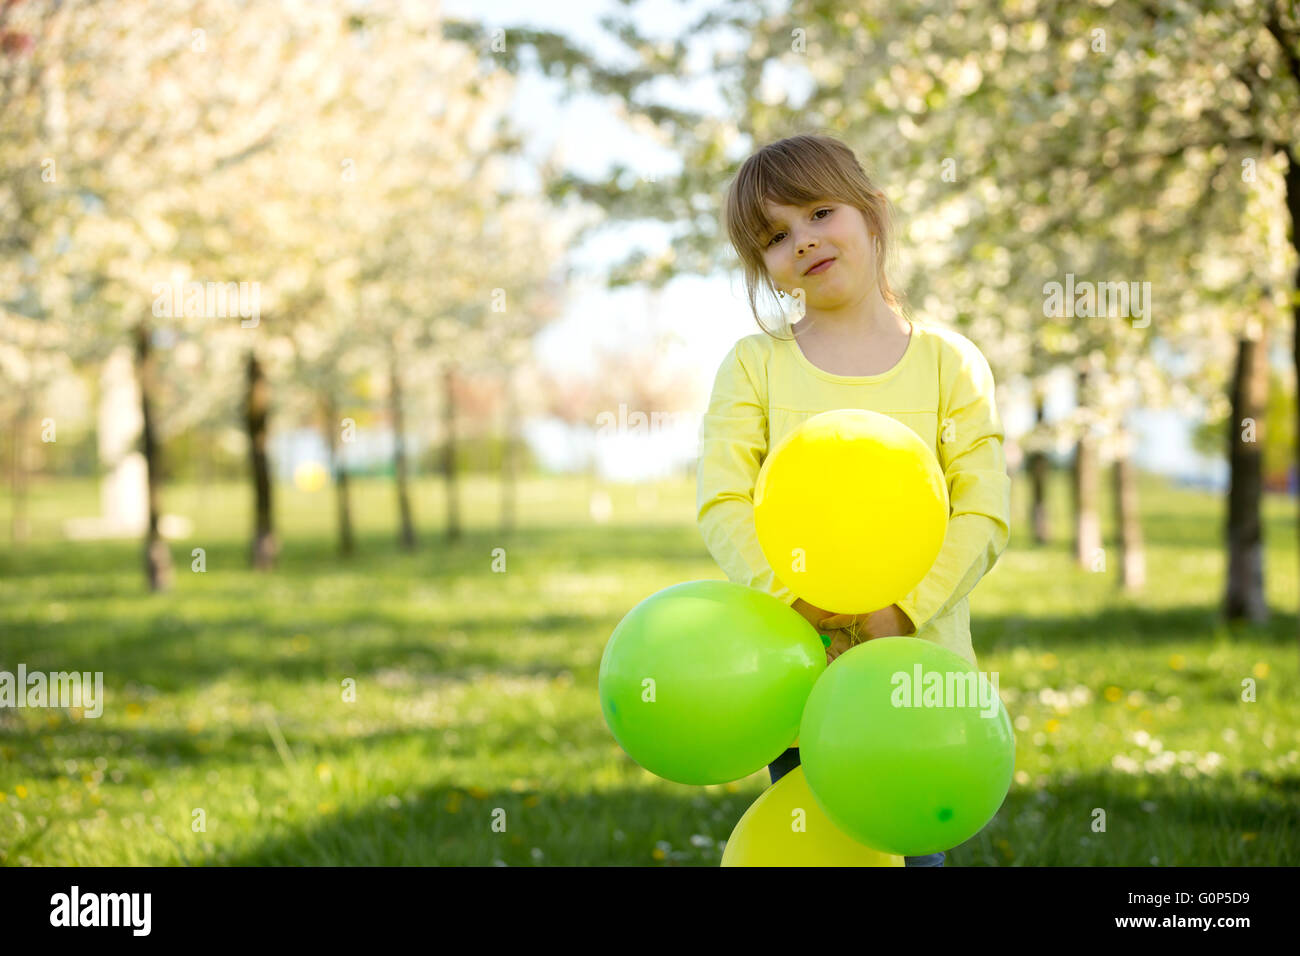 Cute little girl playing with balloons in a blooming apple tree garden, spring sunny late afternoon - Stock Image